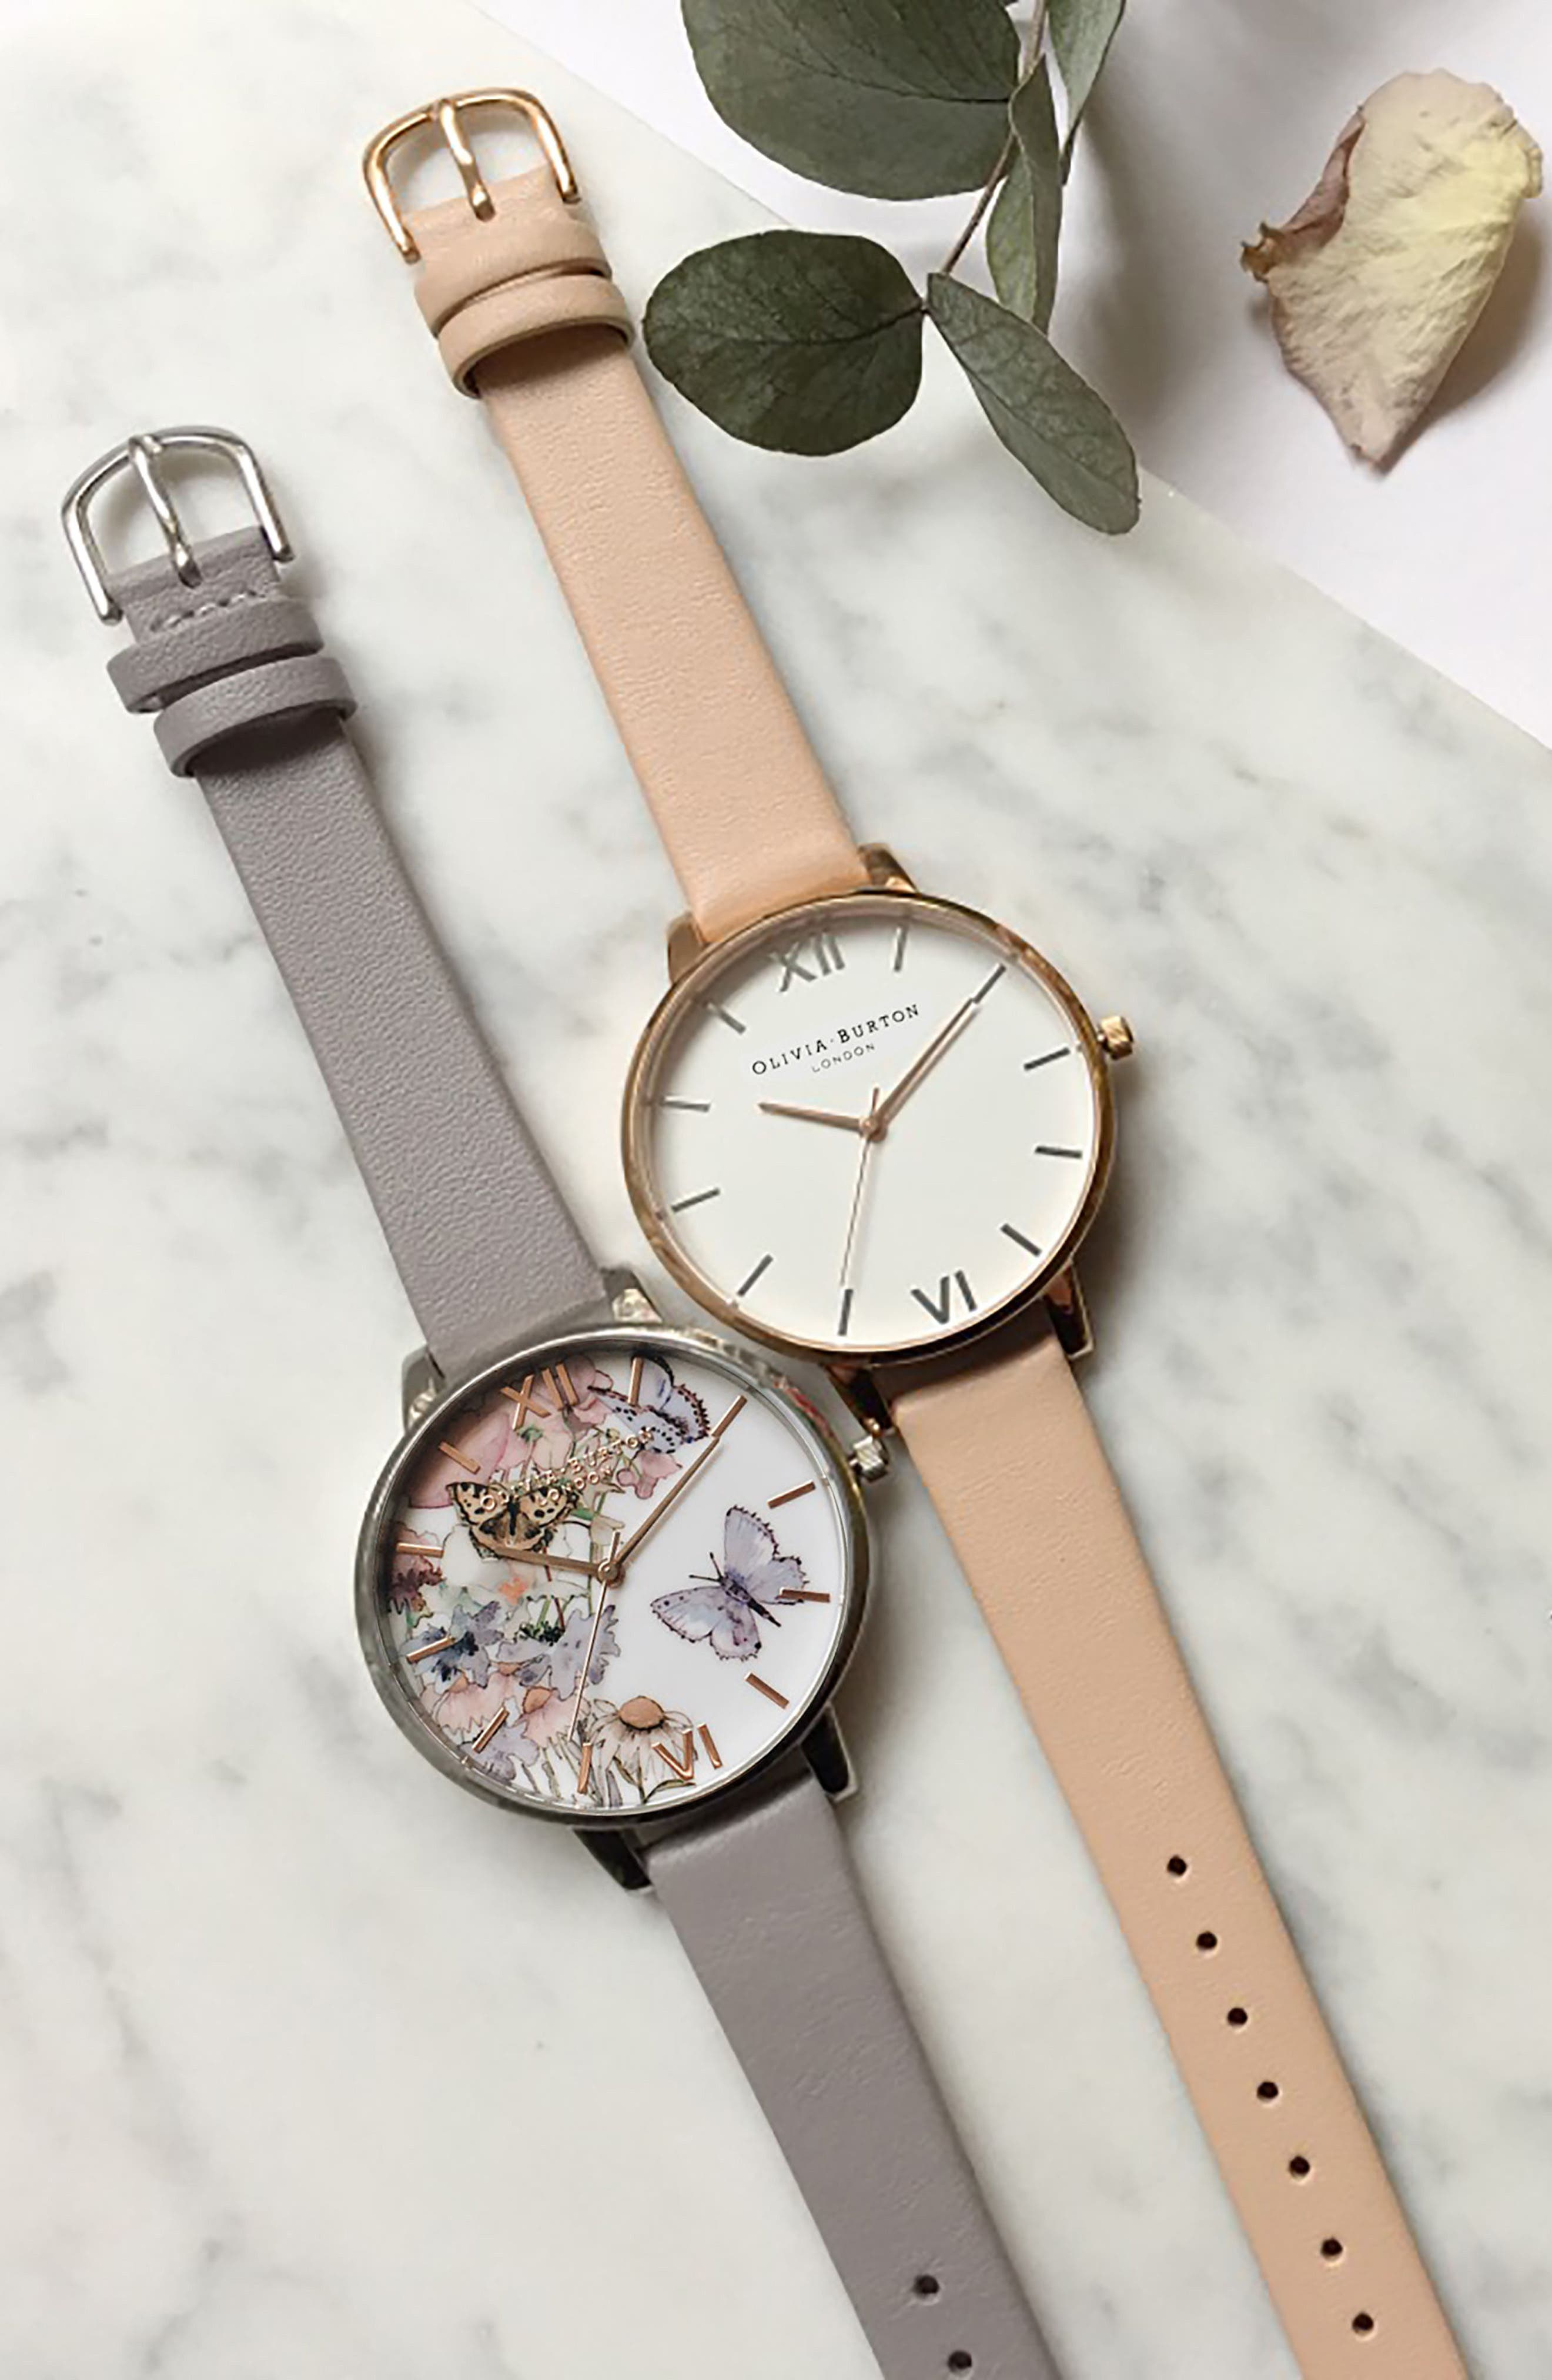 Big Dial Leather Strap Watch, 38mm,                             Alternate thumbnail 7, color,                             PEACH/ WHITE/ ROSE/ SILVER